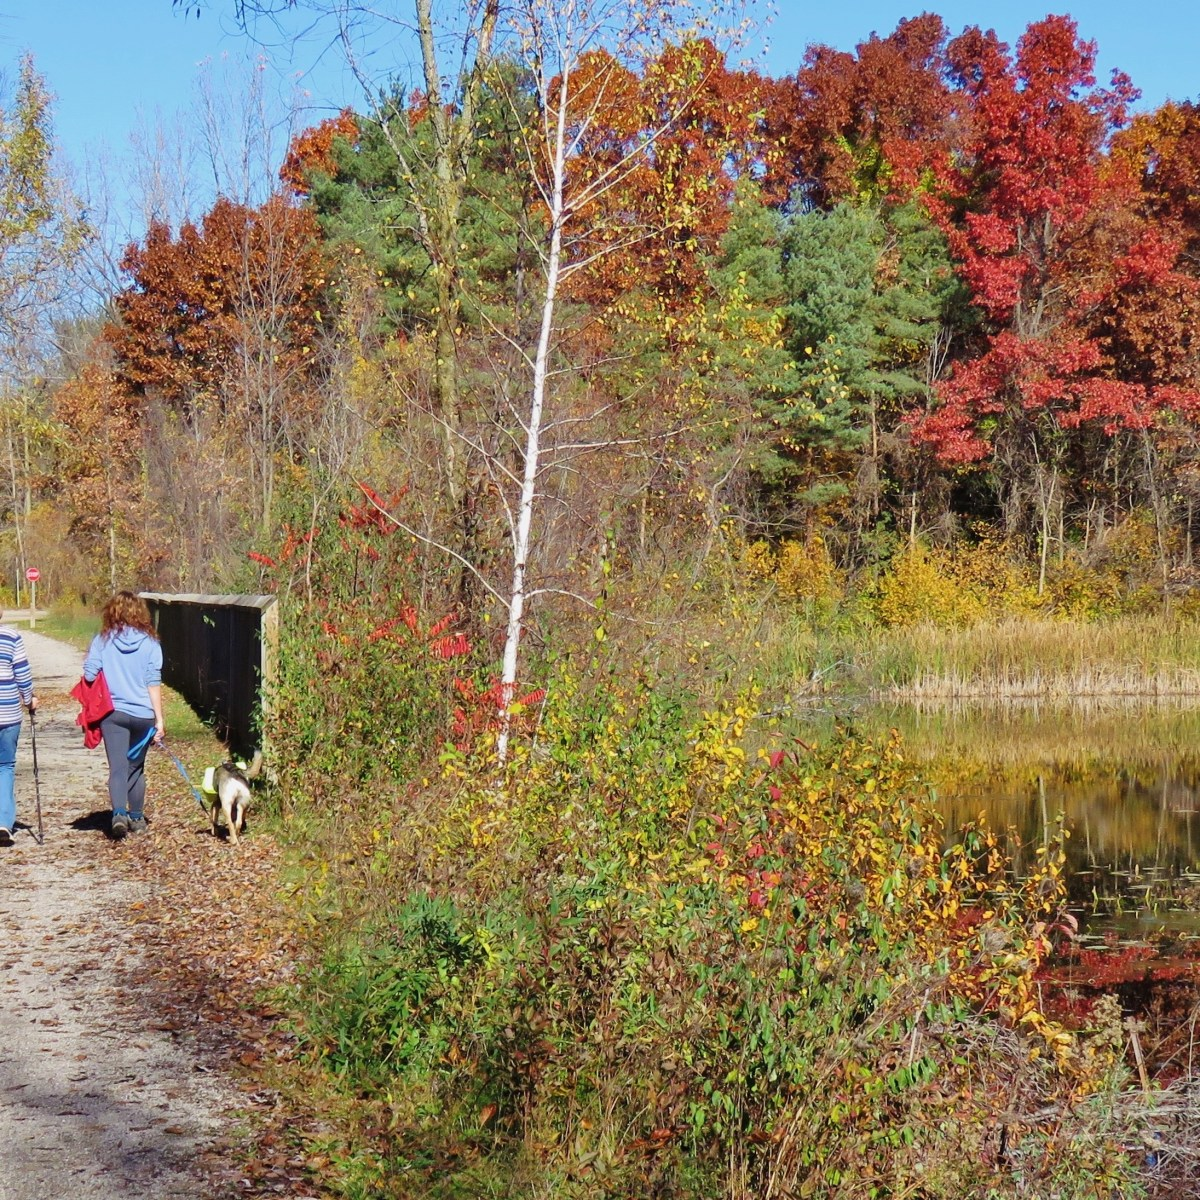 Three women and a dog hike along a trail as surrounded by autumn-colored leaves